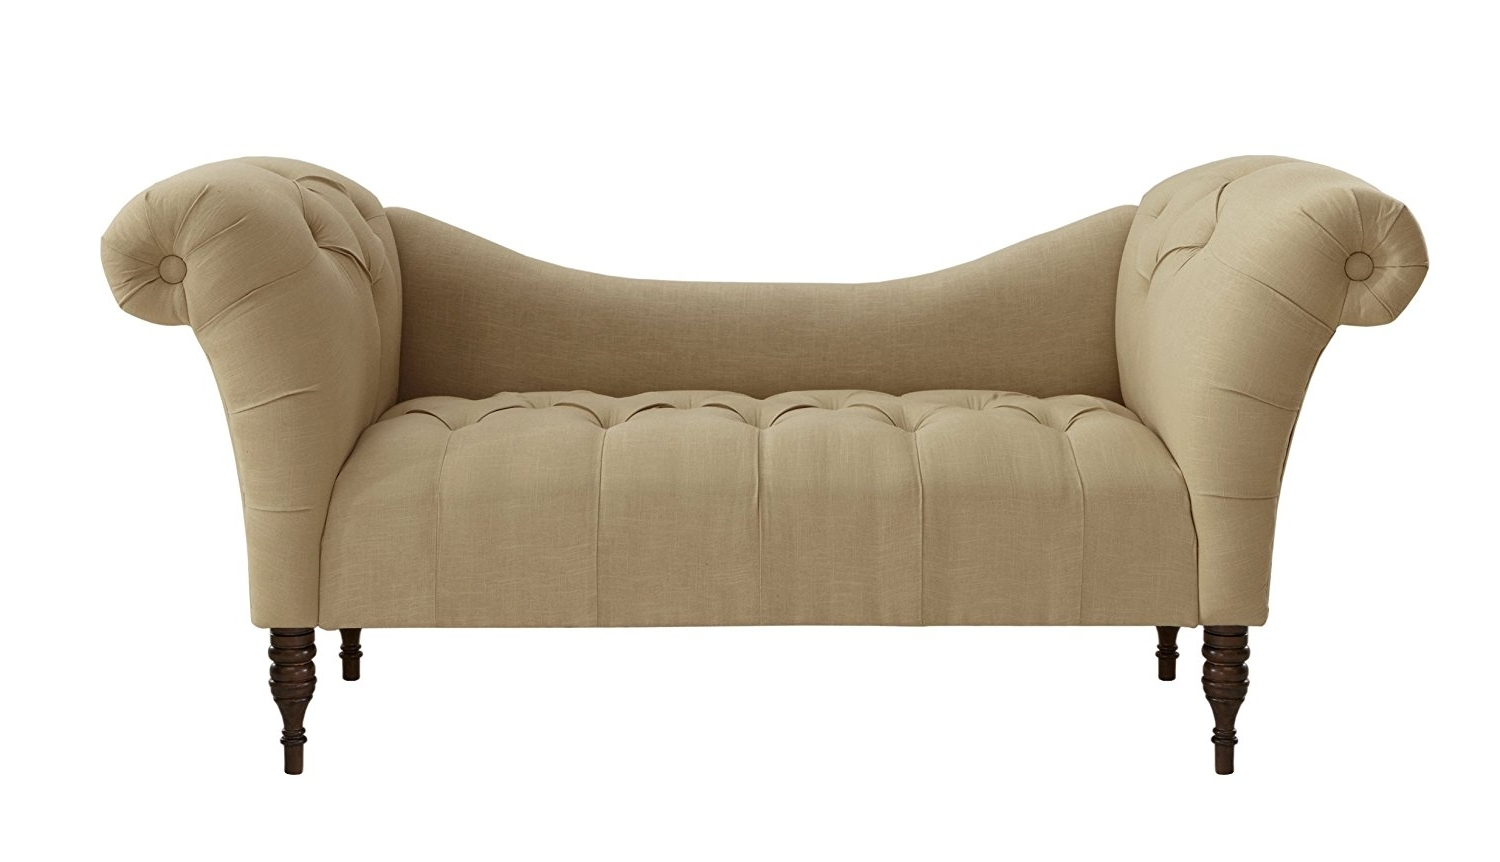 Famous Tufted Chaises Inside Amazon: Skyline Furniture Tufted Chaise Lounge In Linen (View 9 of 15)